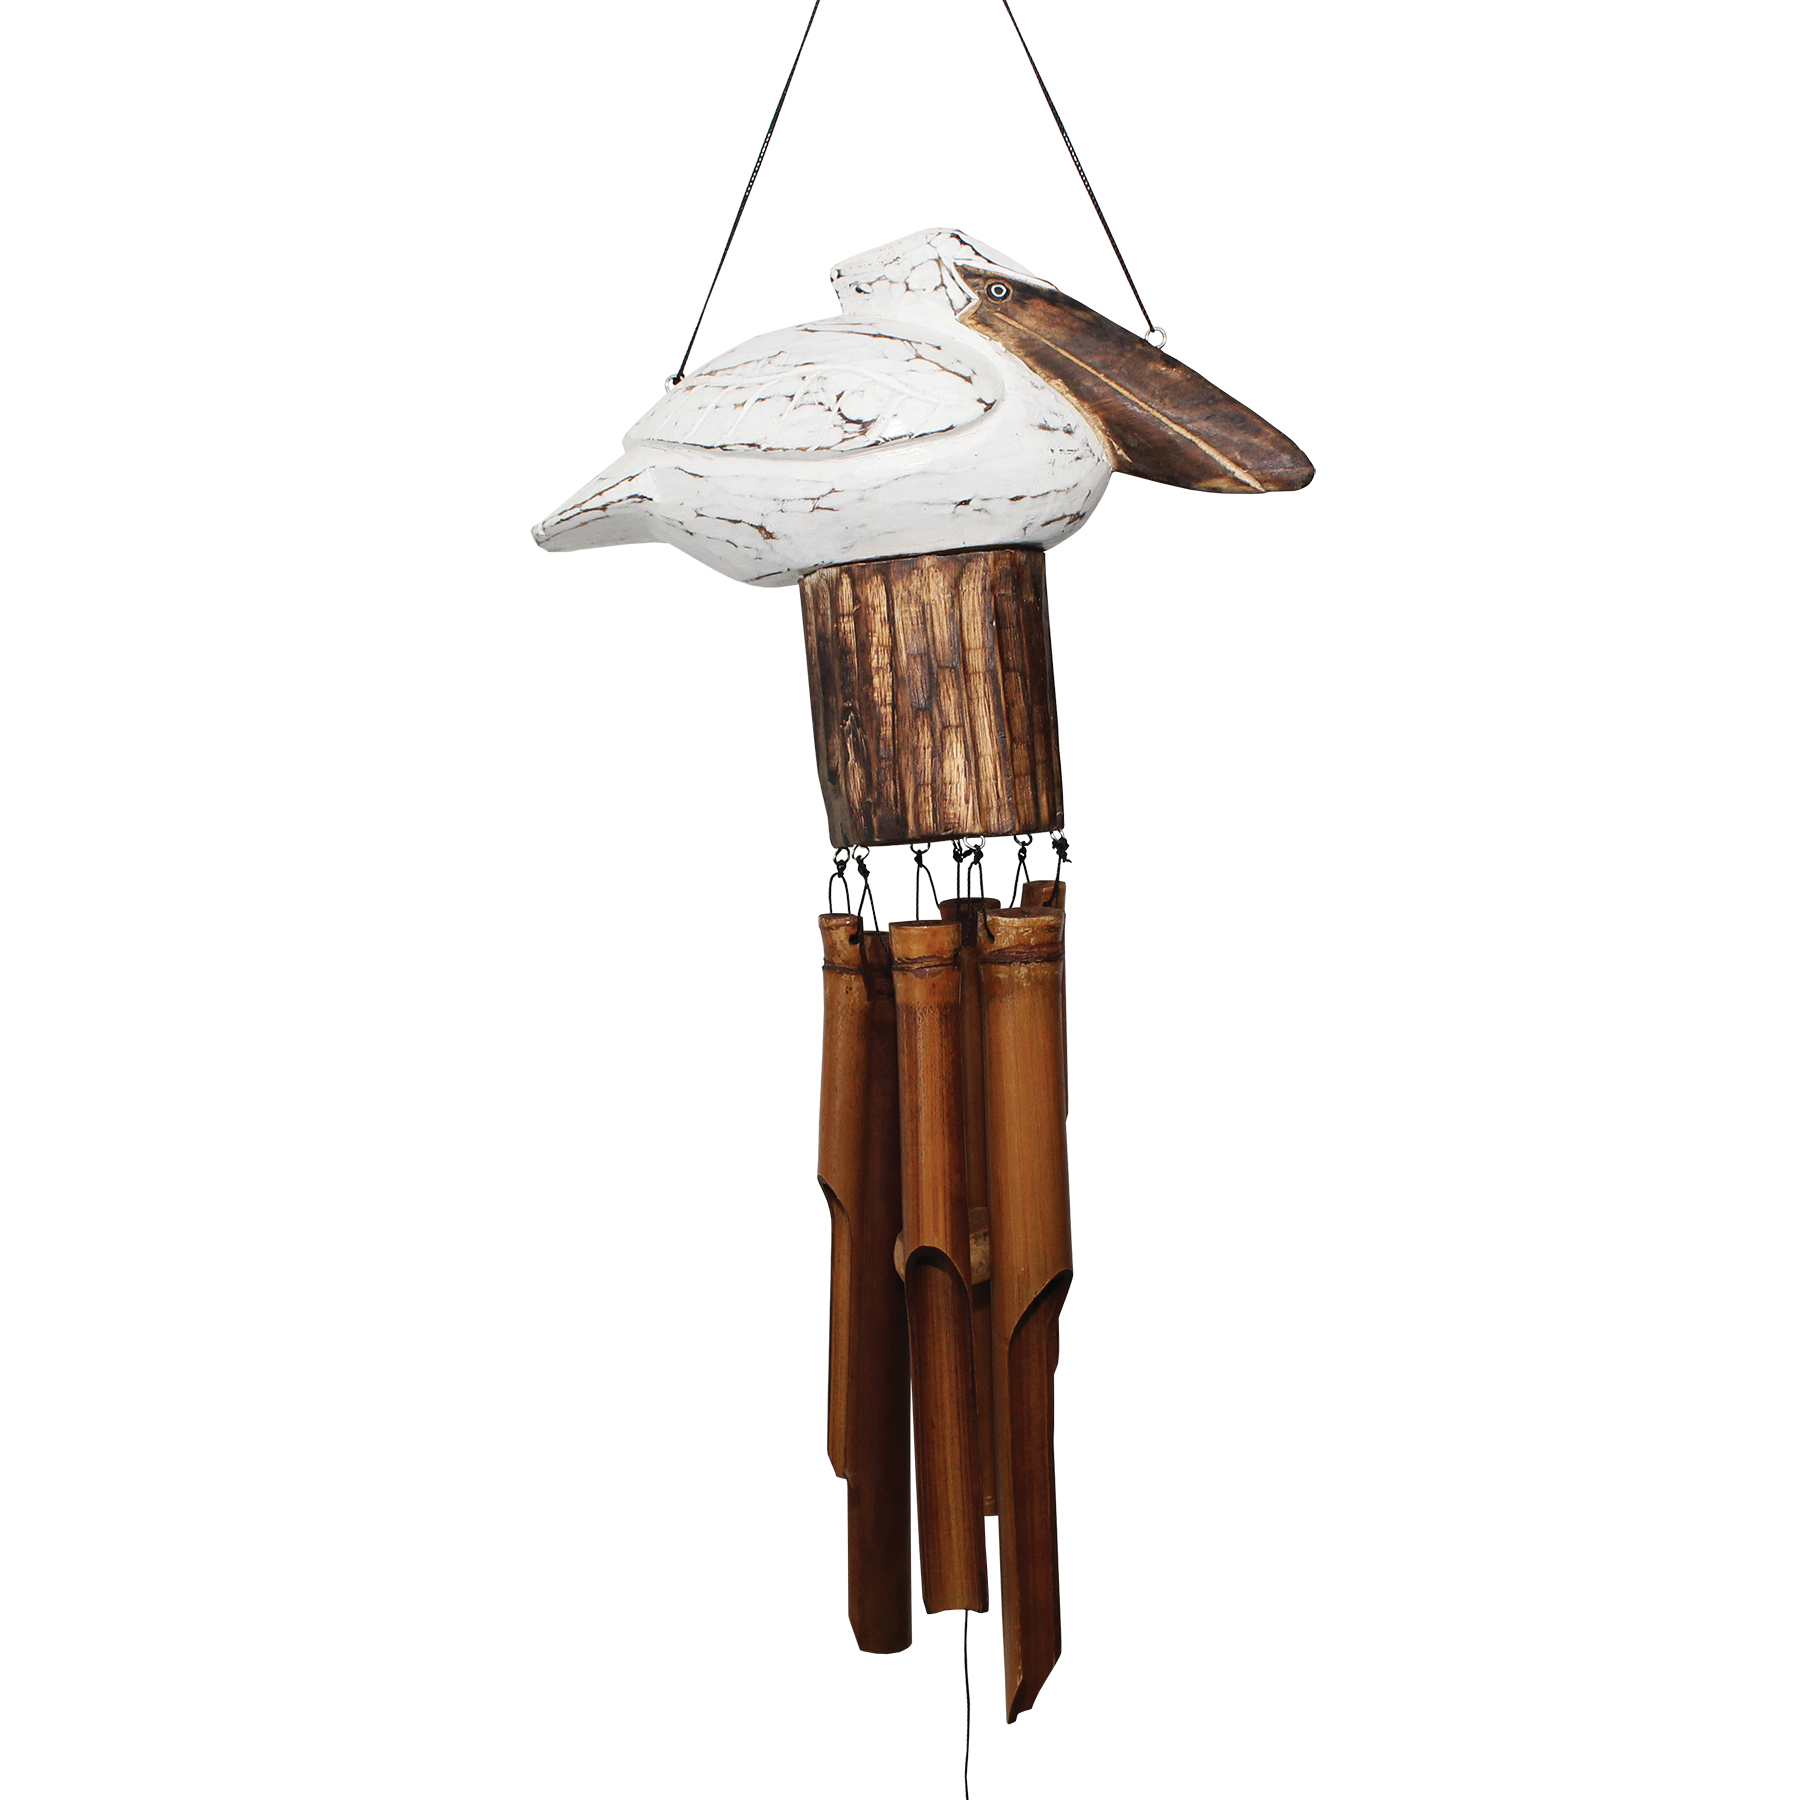 115SQ - Squat Pelican Bamboo Wind Chime